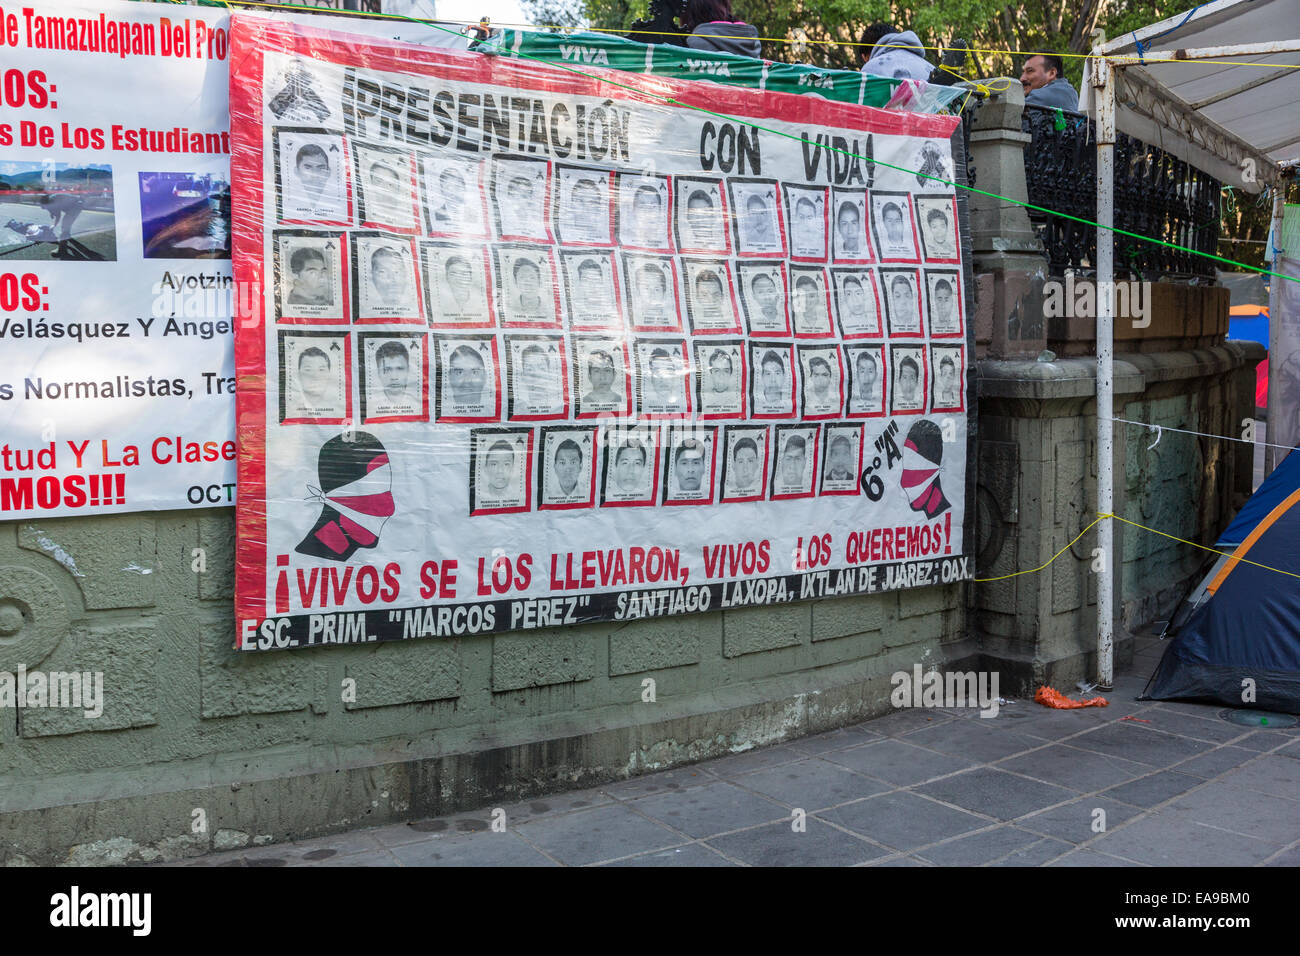 Banners demanding justice for the missing students believed executed by corrupt police hang from the main square - Stock Image